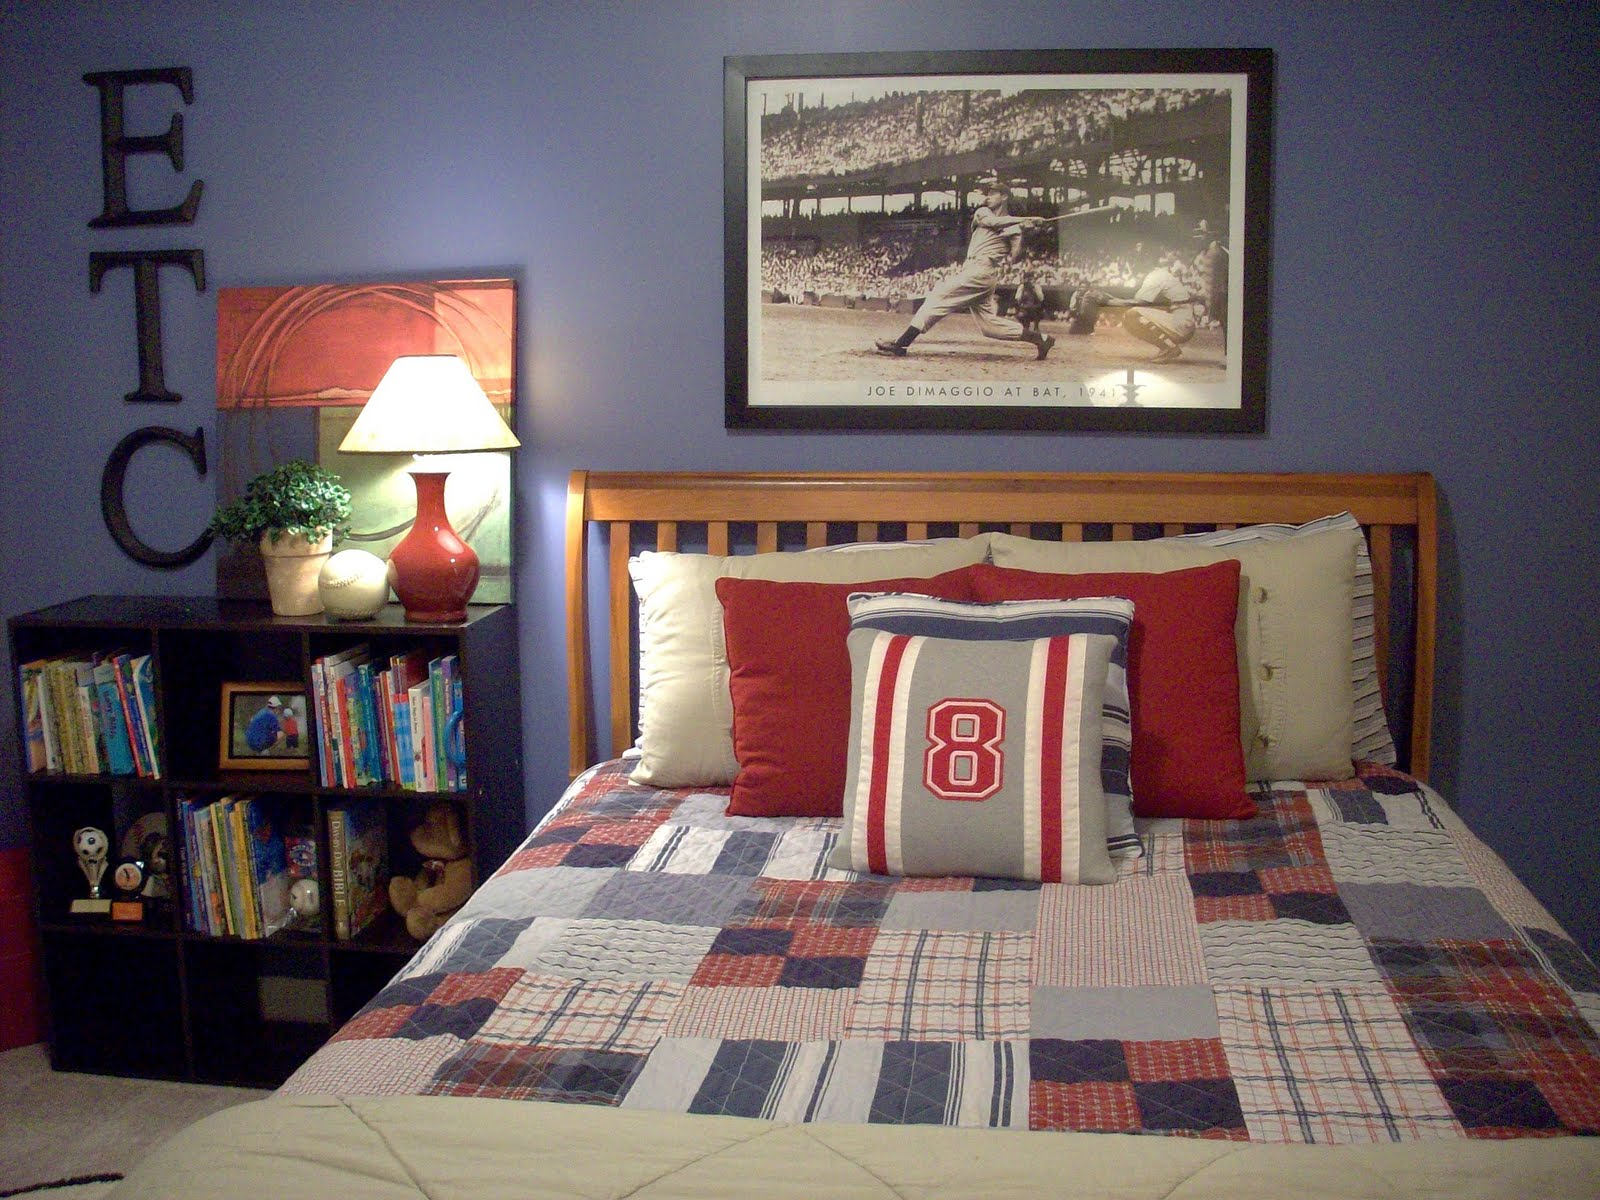 A Little Boy S Bedroom With Style Emily Clark